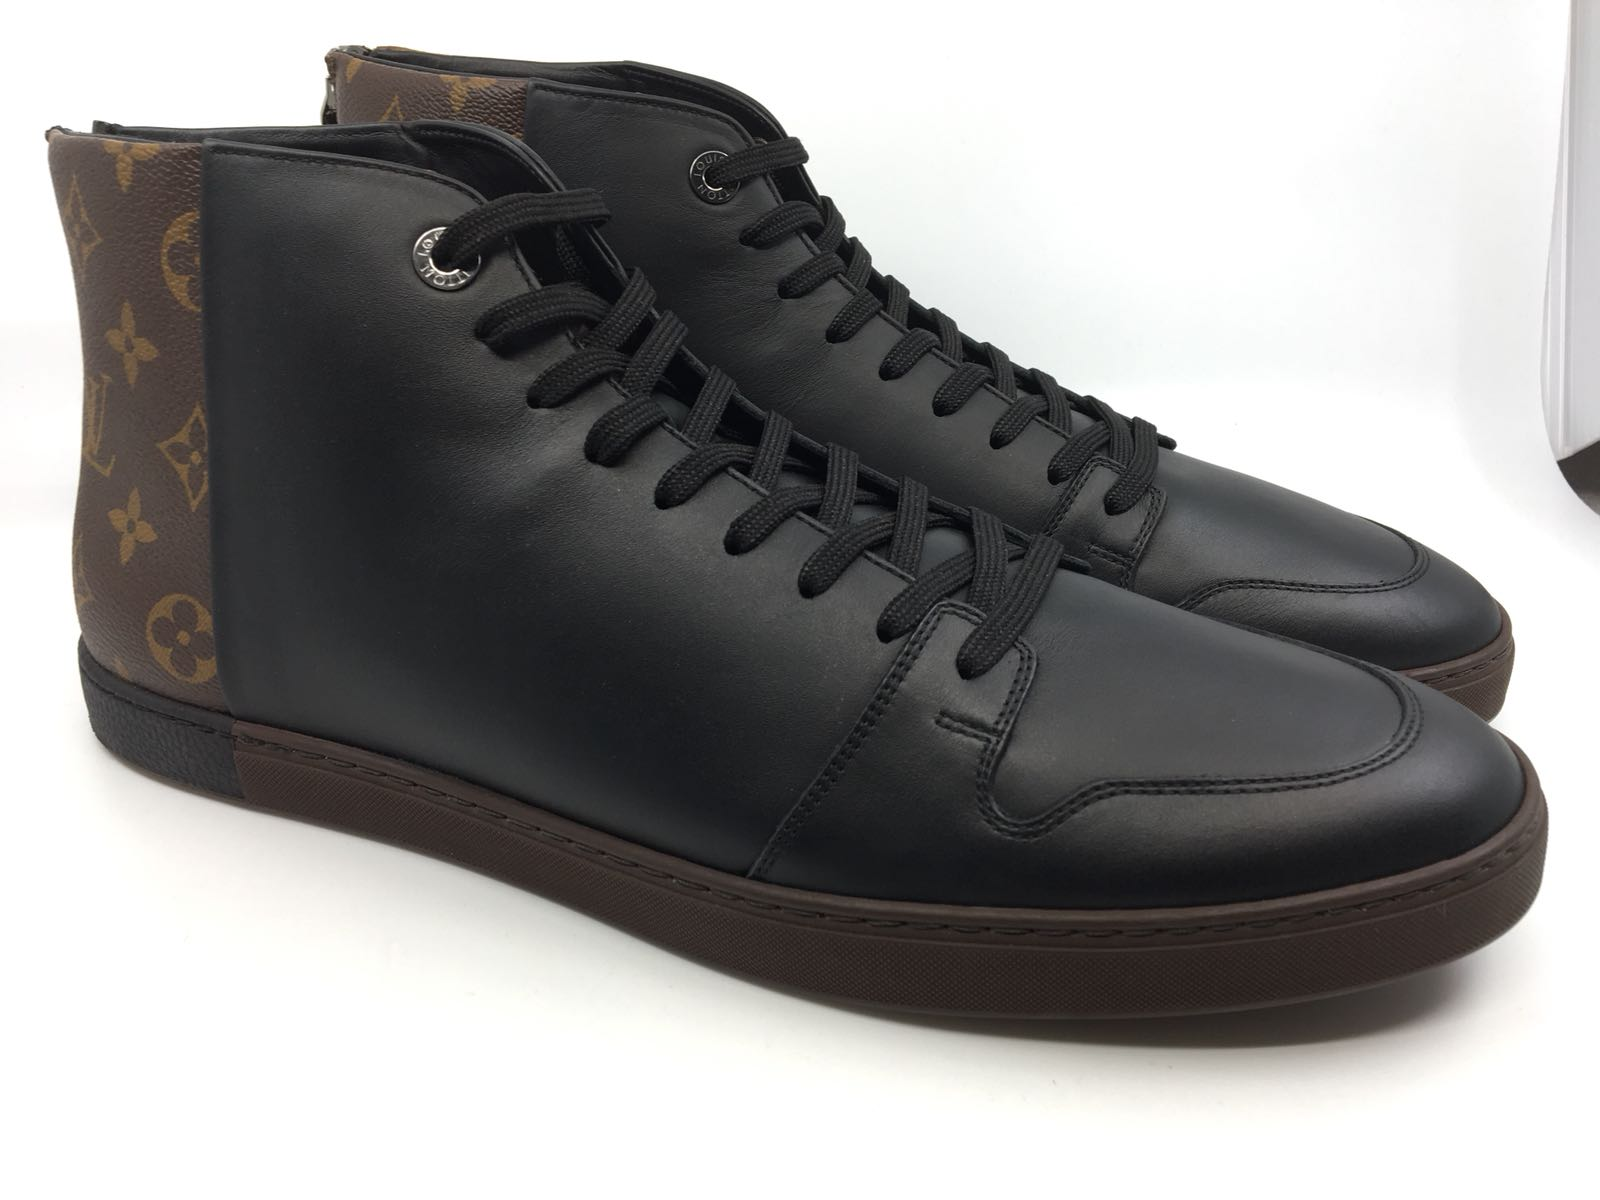 ac8cddde4e Line-Up Sneaker Boot – Luxuria & Co.